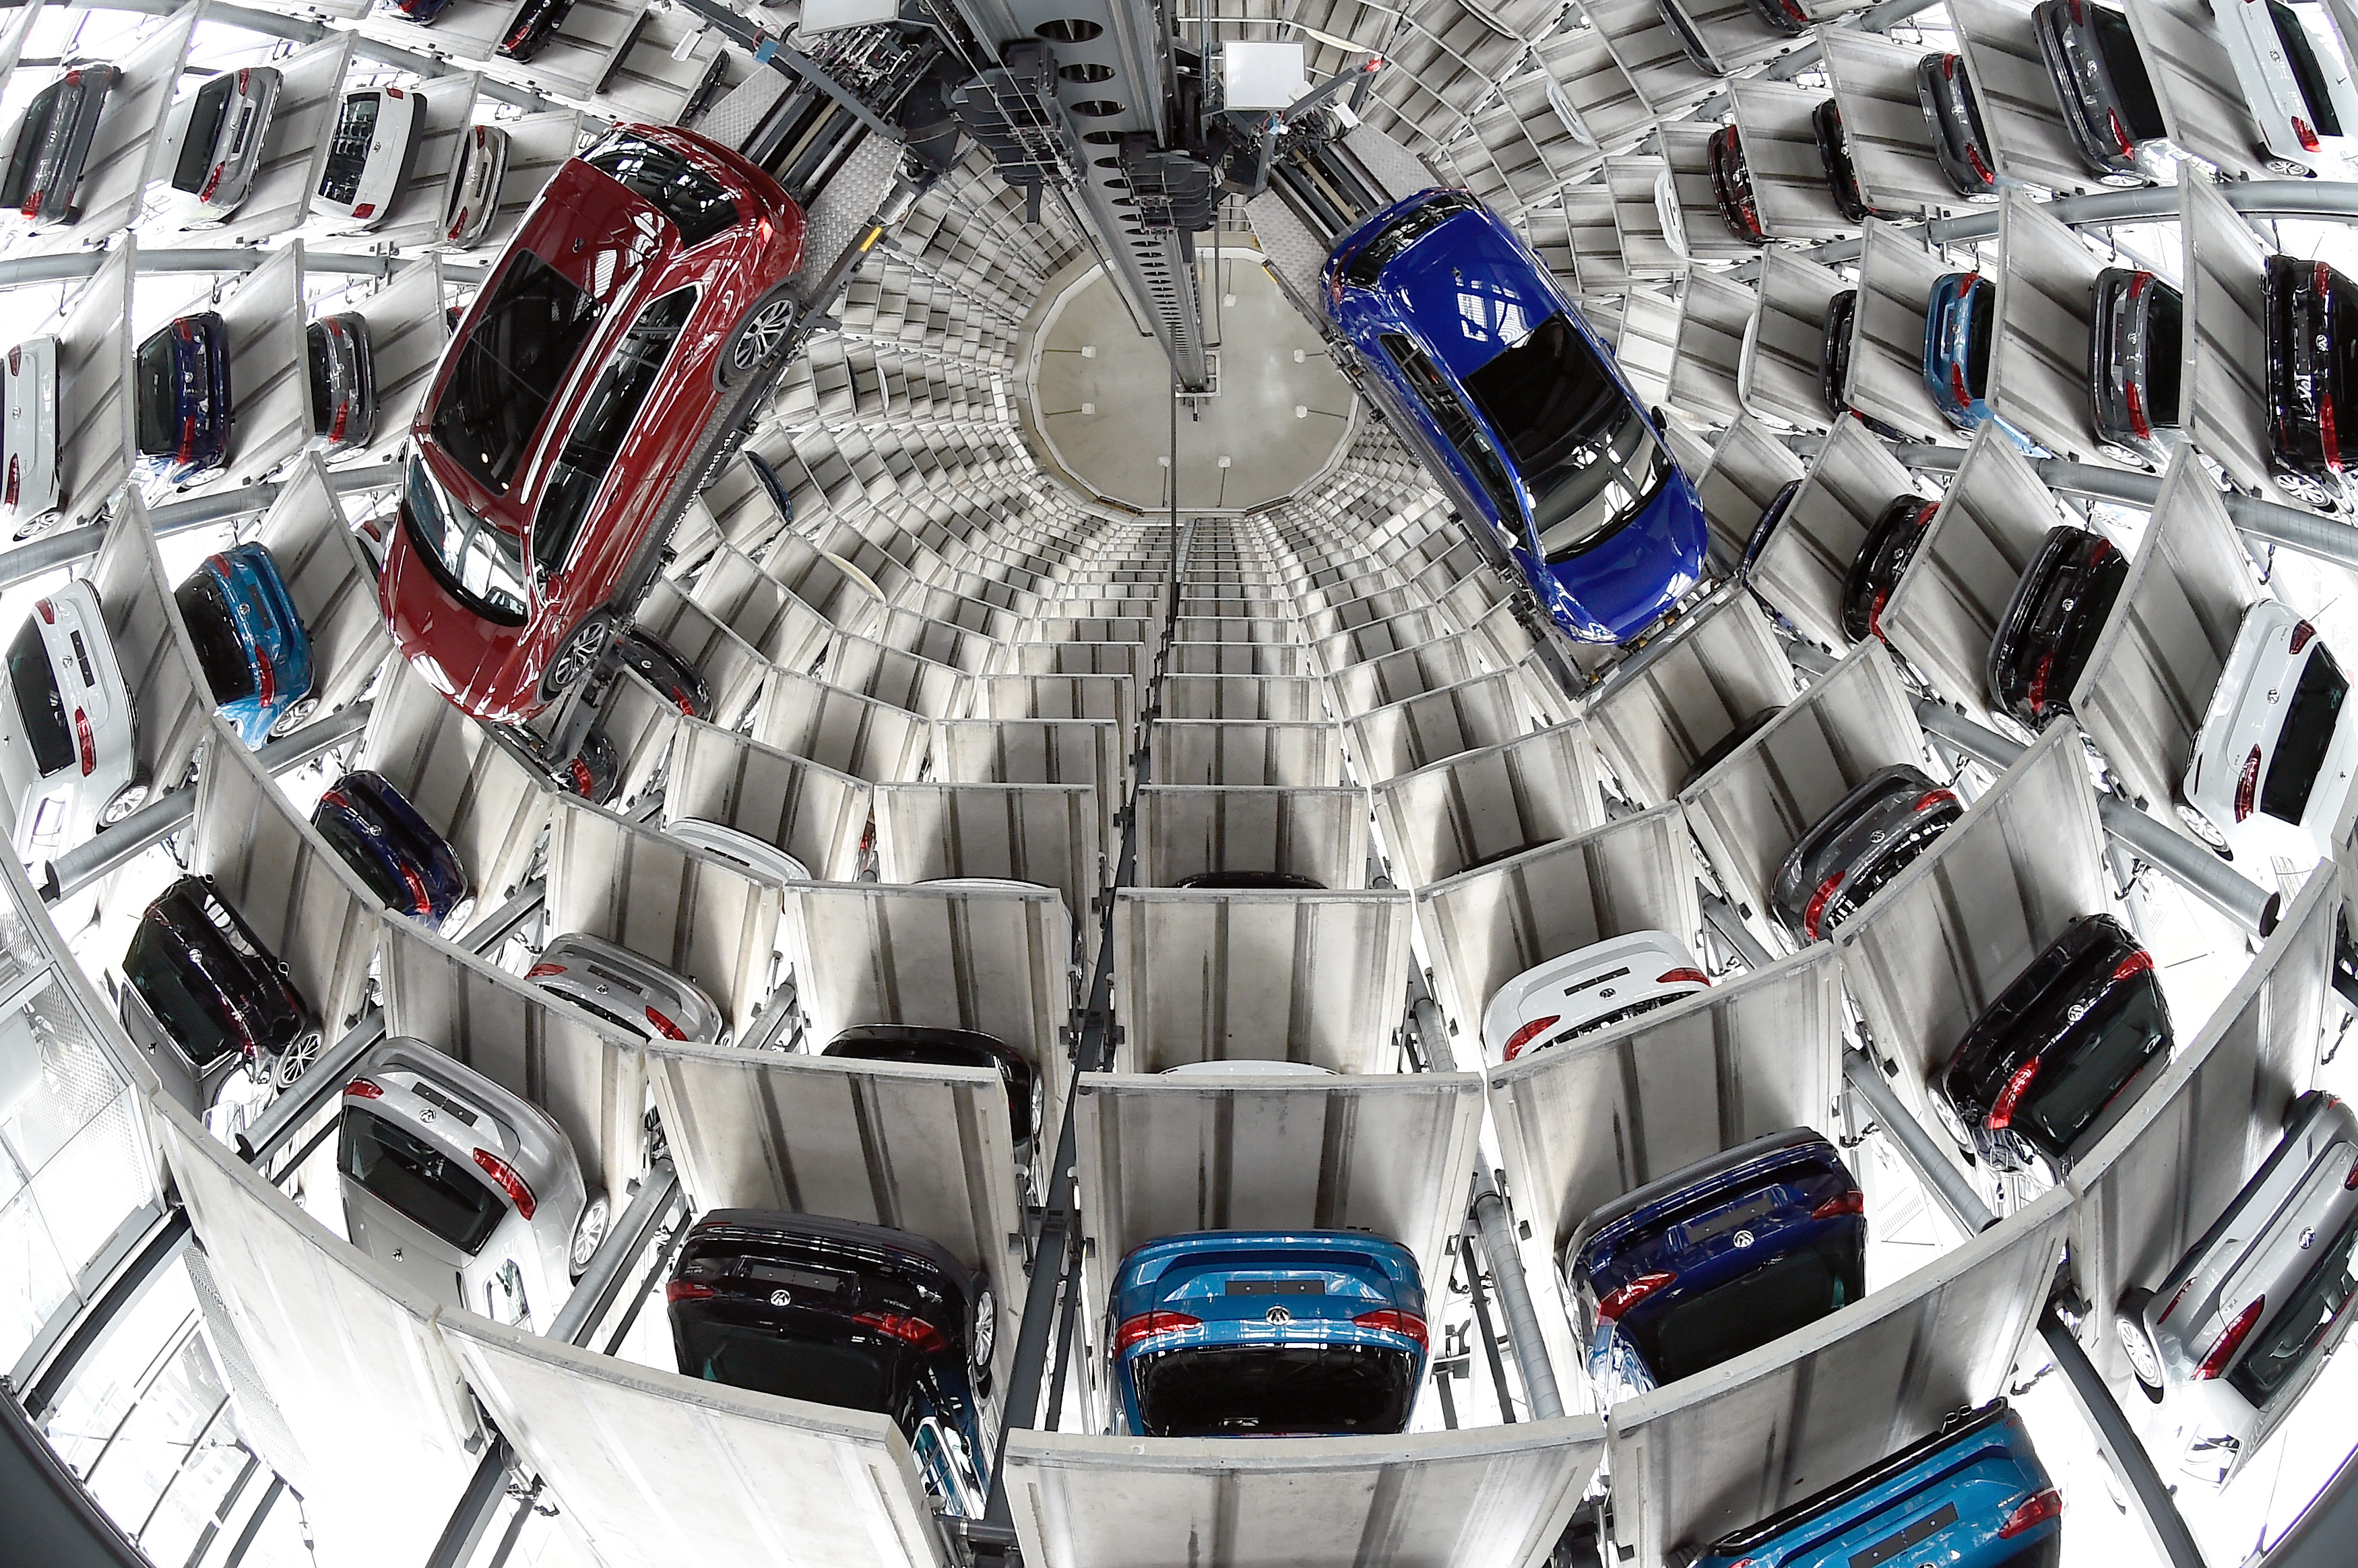 VW Golfs are loaded in a delivery tower at the plant of German carmaker Volkswagen in Wolfsburg, Germany, March 14, 2017.      REUTERS/Fabian Bimmer   - LR1ED3E0W7UCC